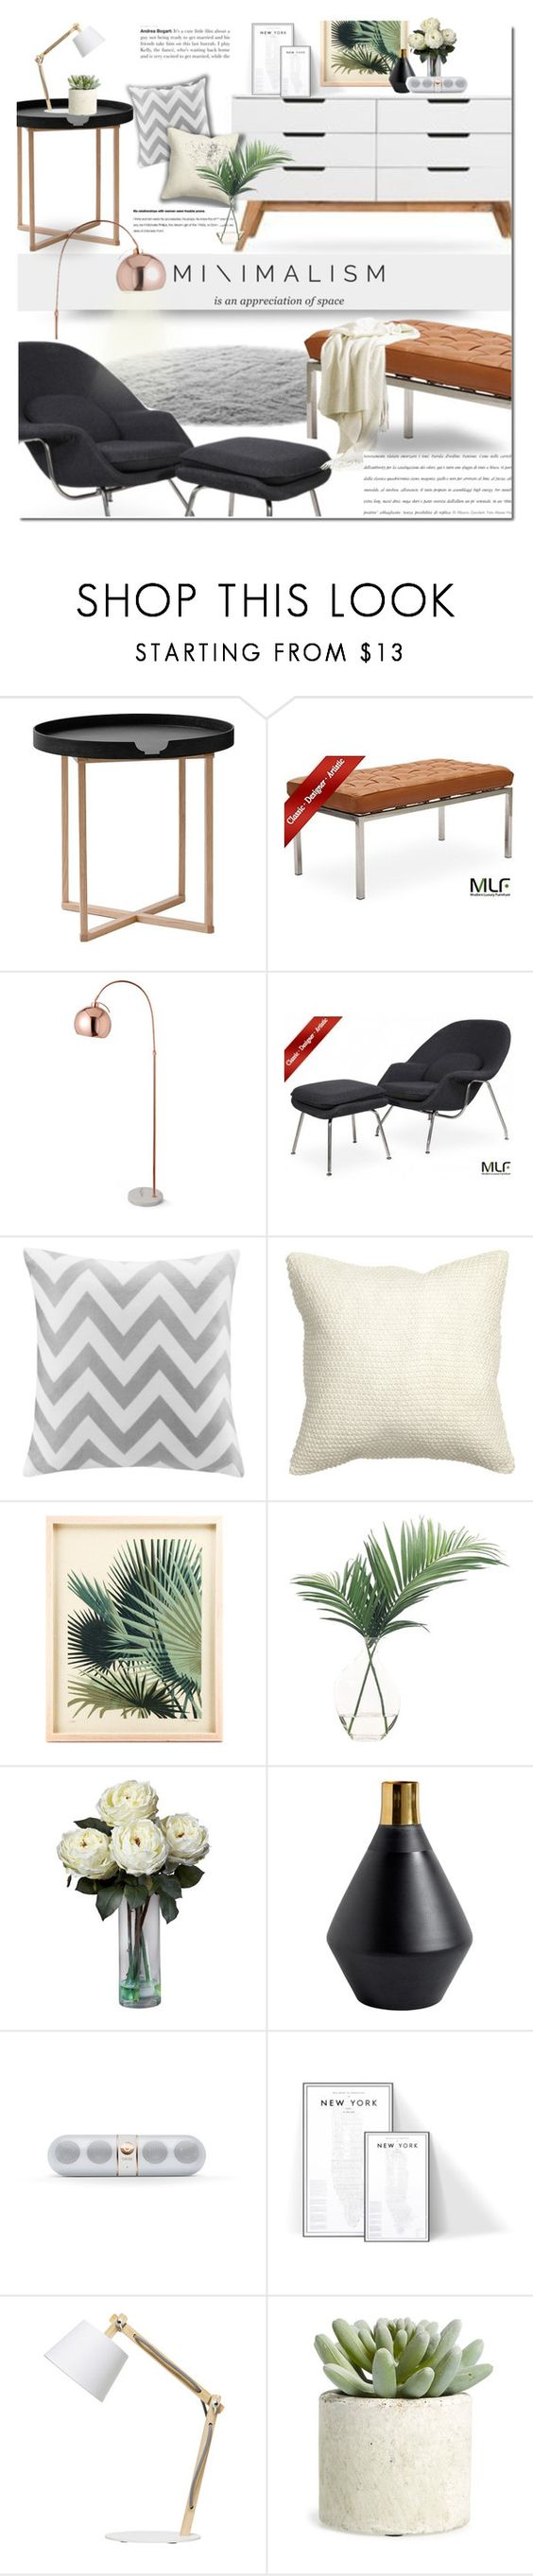 """Minimalism"" by dian-lado ❤ liked on Polyvore featuring interior, interiors, interior design, home, home decor, interior decorating, .wireworks, womb, Intelligent Design and H&M"